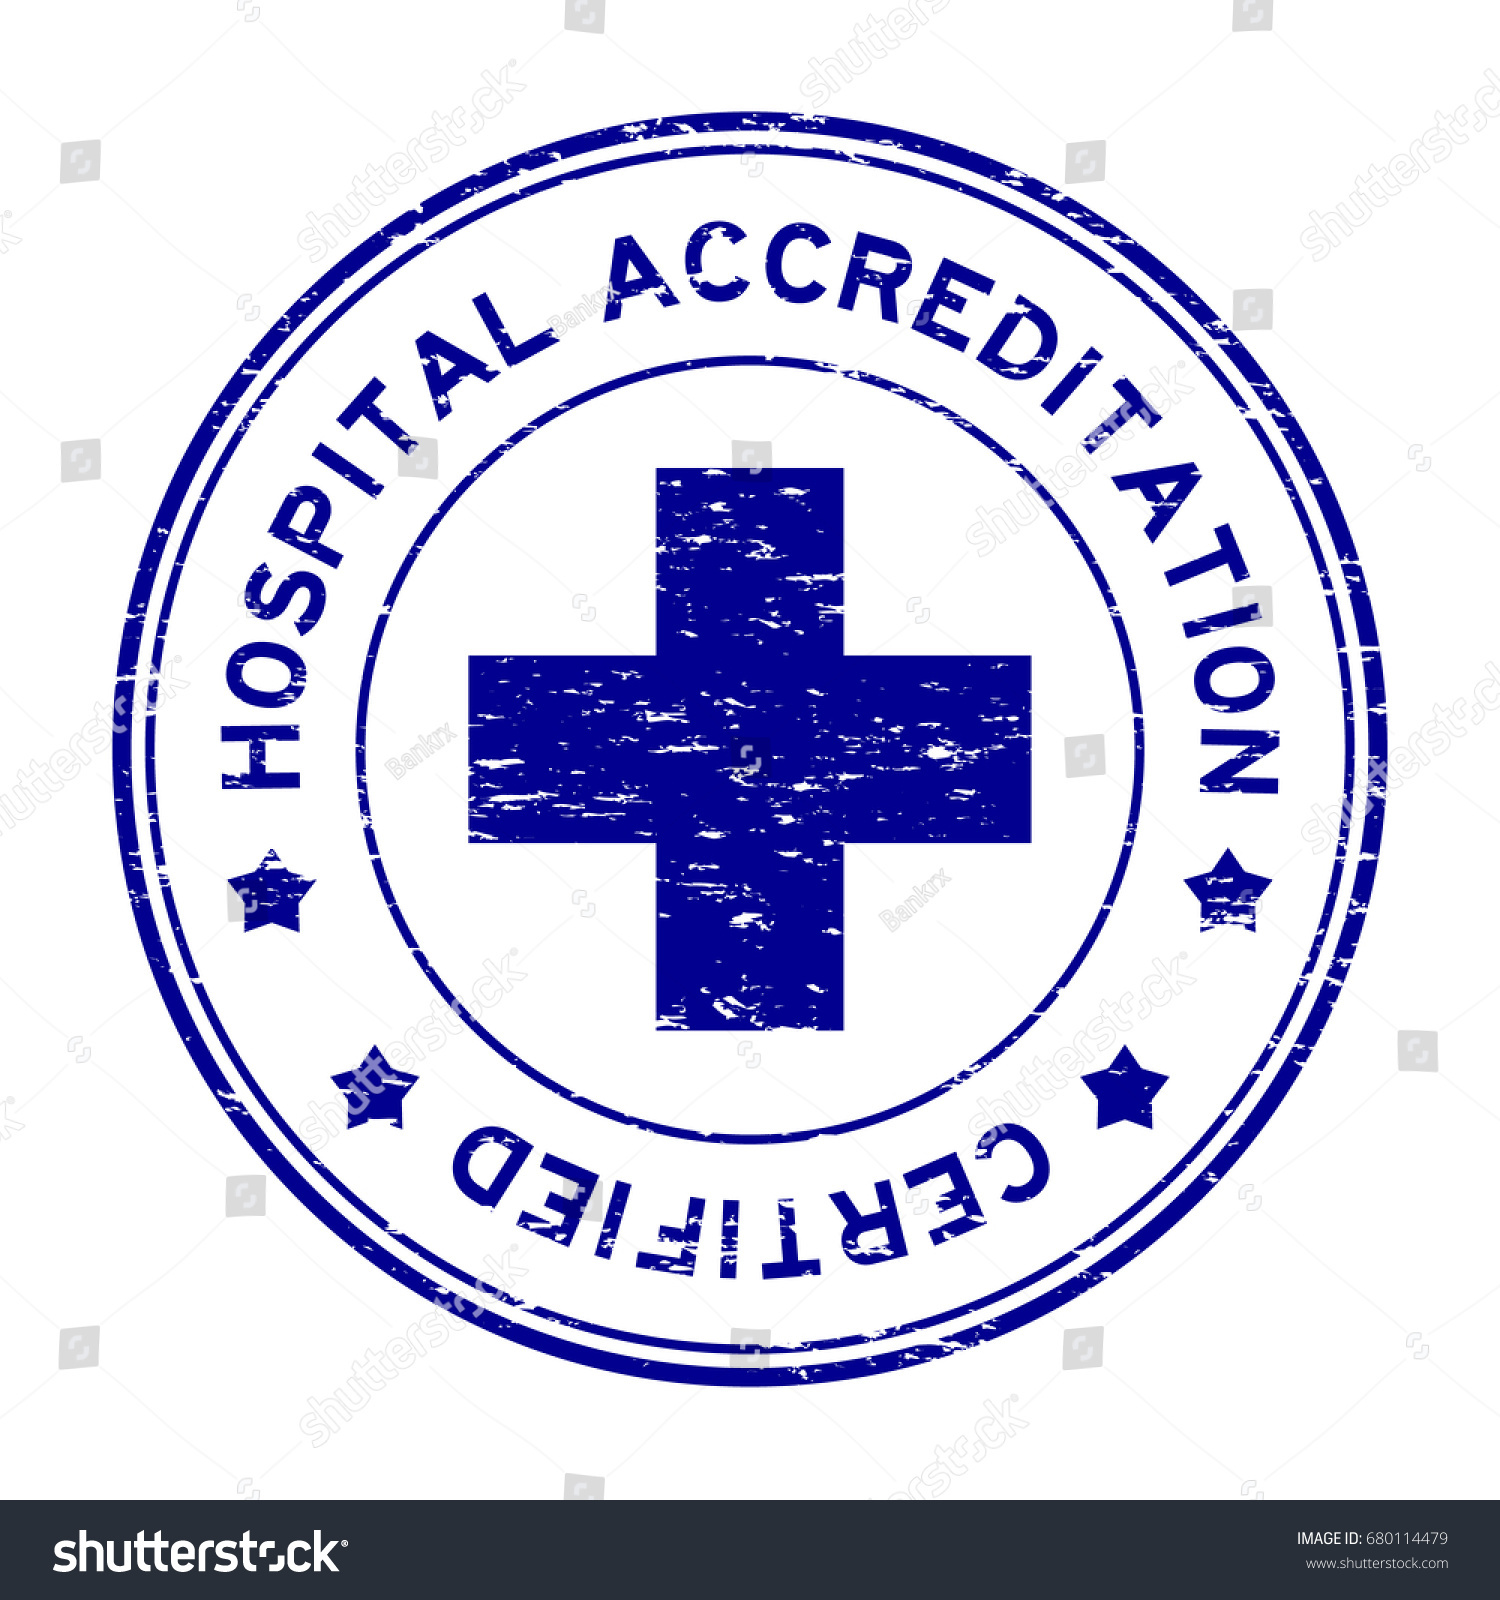 Grunge Blue Hospital Accreditation Certified Round Rubber Stamp